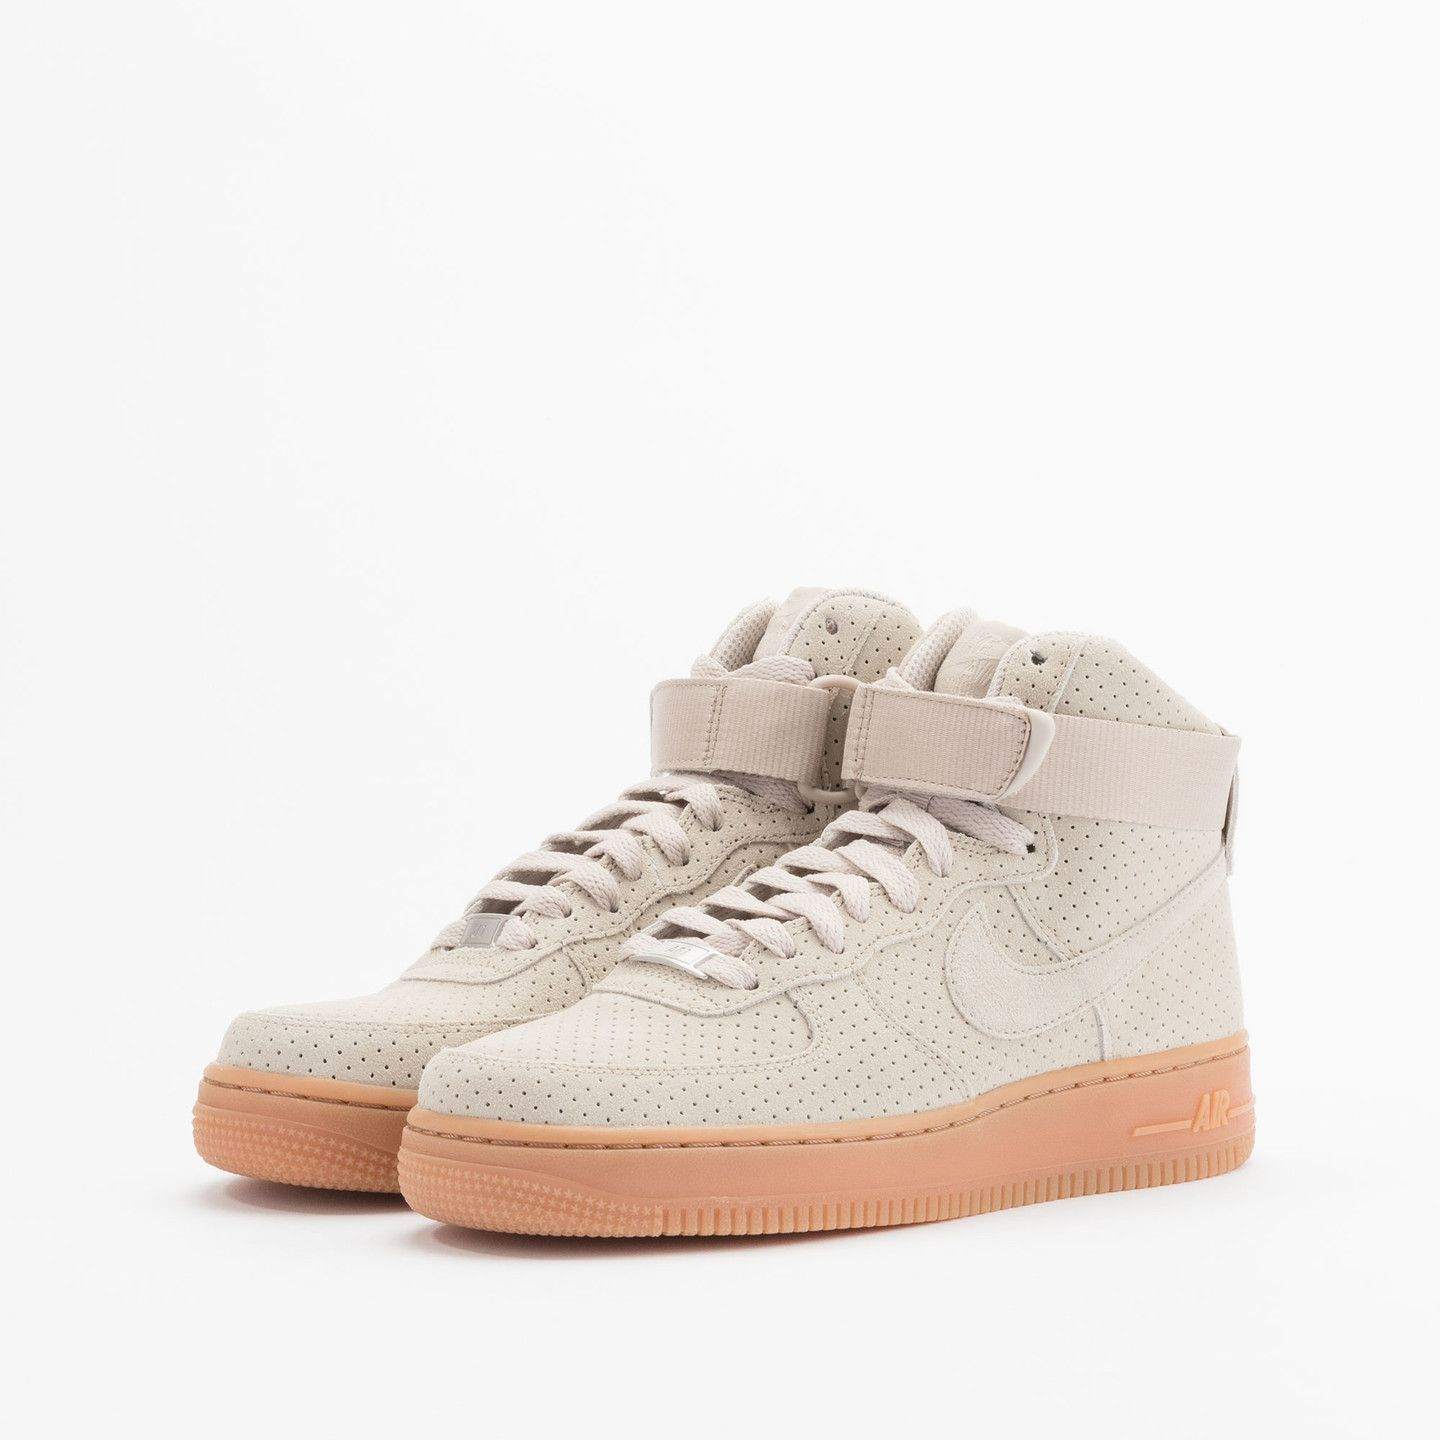 online retailer f4571 1ee23 Nike Wmns Air Force 1 Hi Suede String  String 749266-200